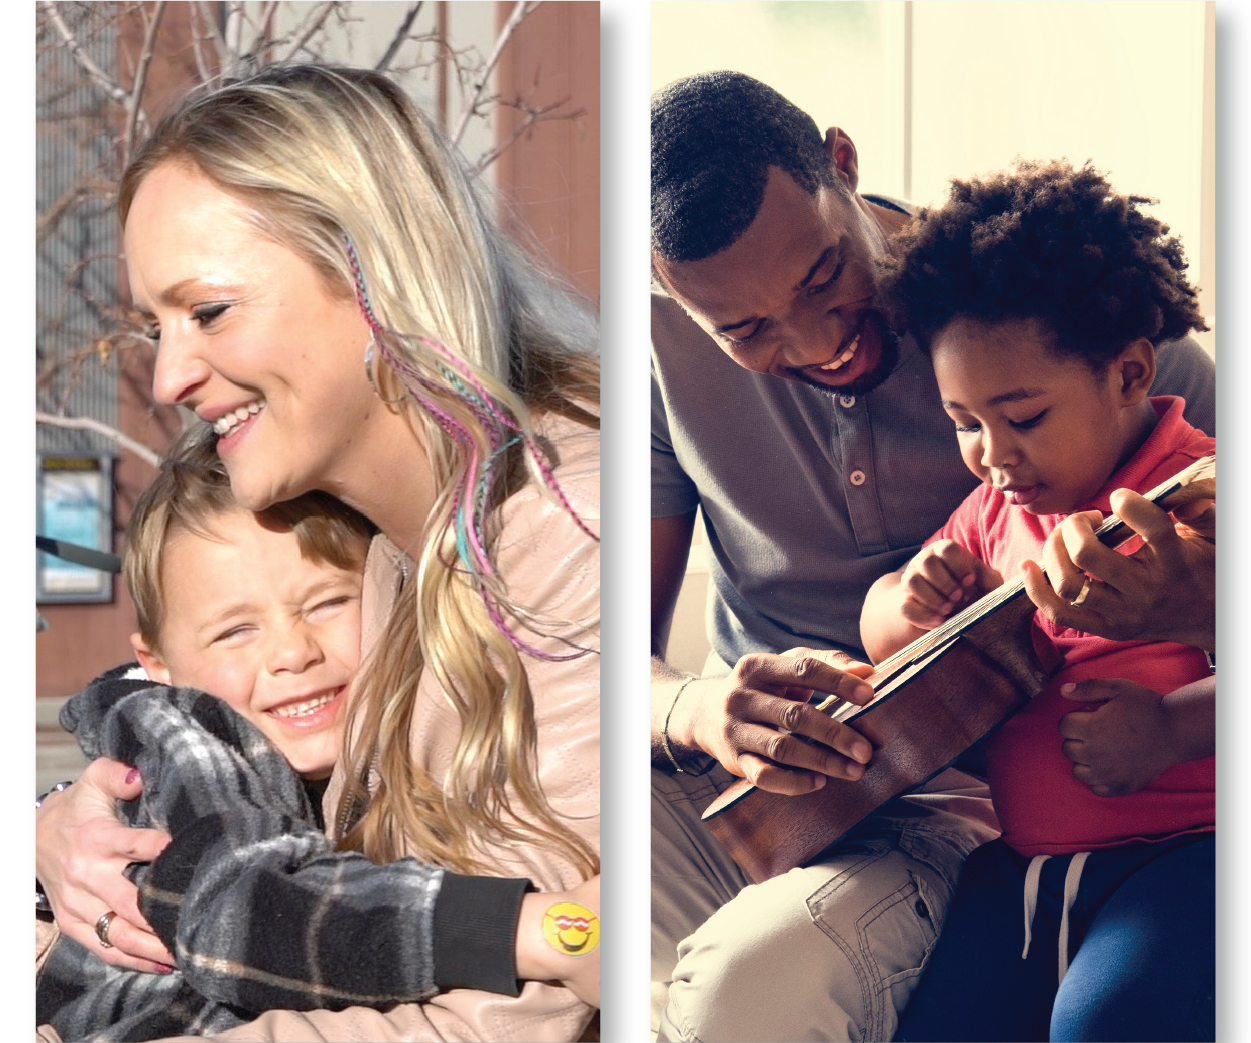 Single Parents with children - A mother and son hugging and a father and son playing guitar.